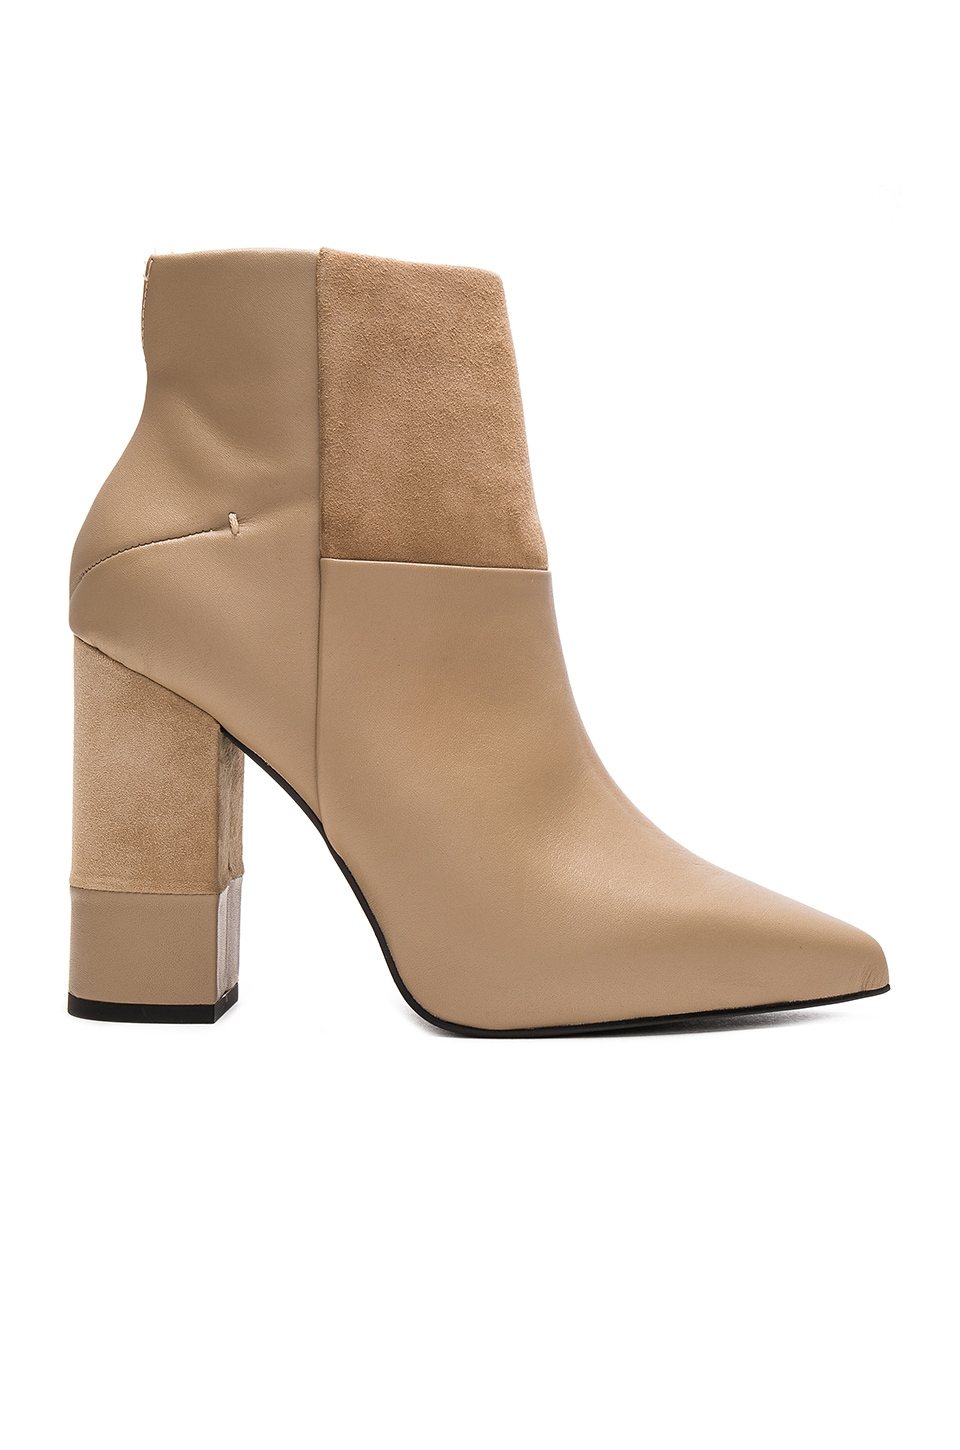 SENSO Warren I Bootie in Sand